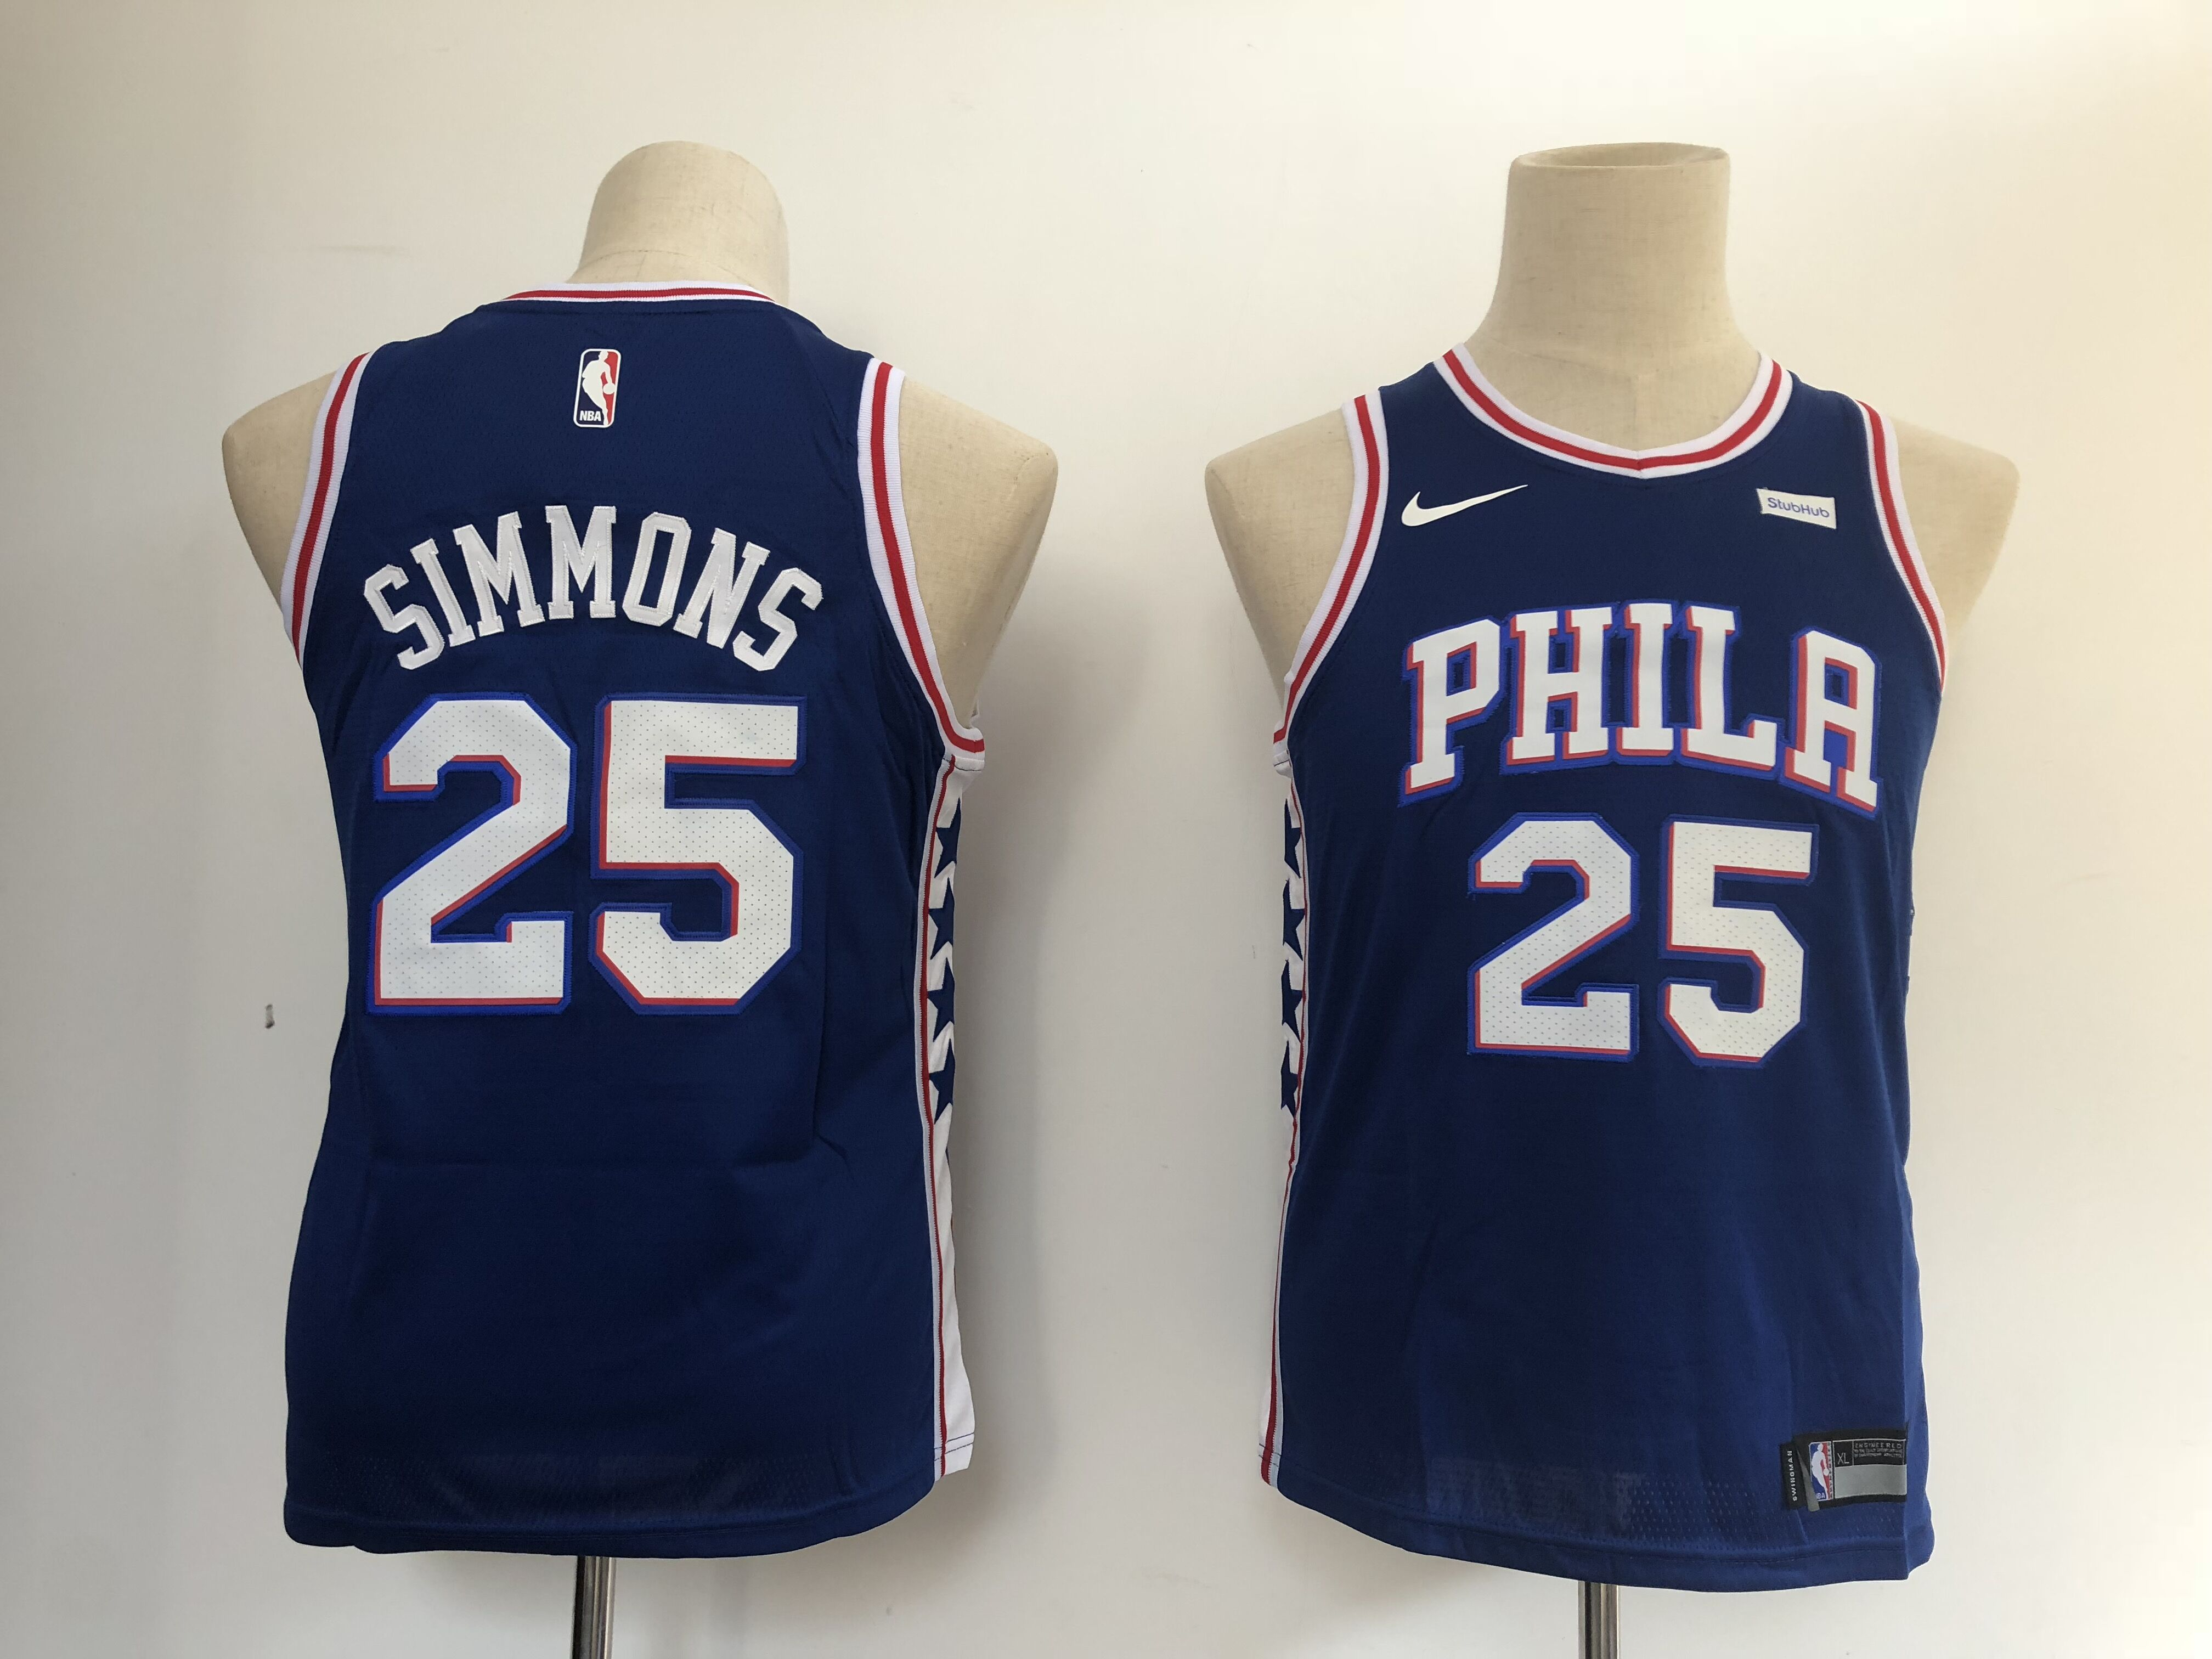 Youth Philadelphia 76ers 25 Simmons Blue Nike NBA Jerseys